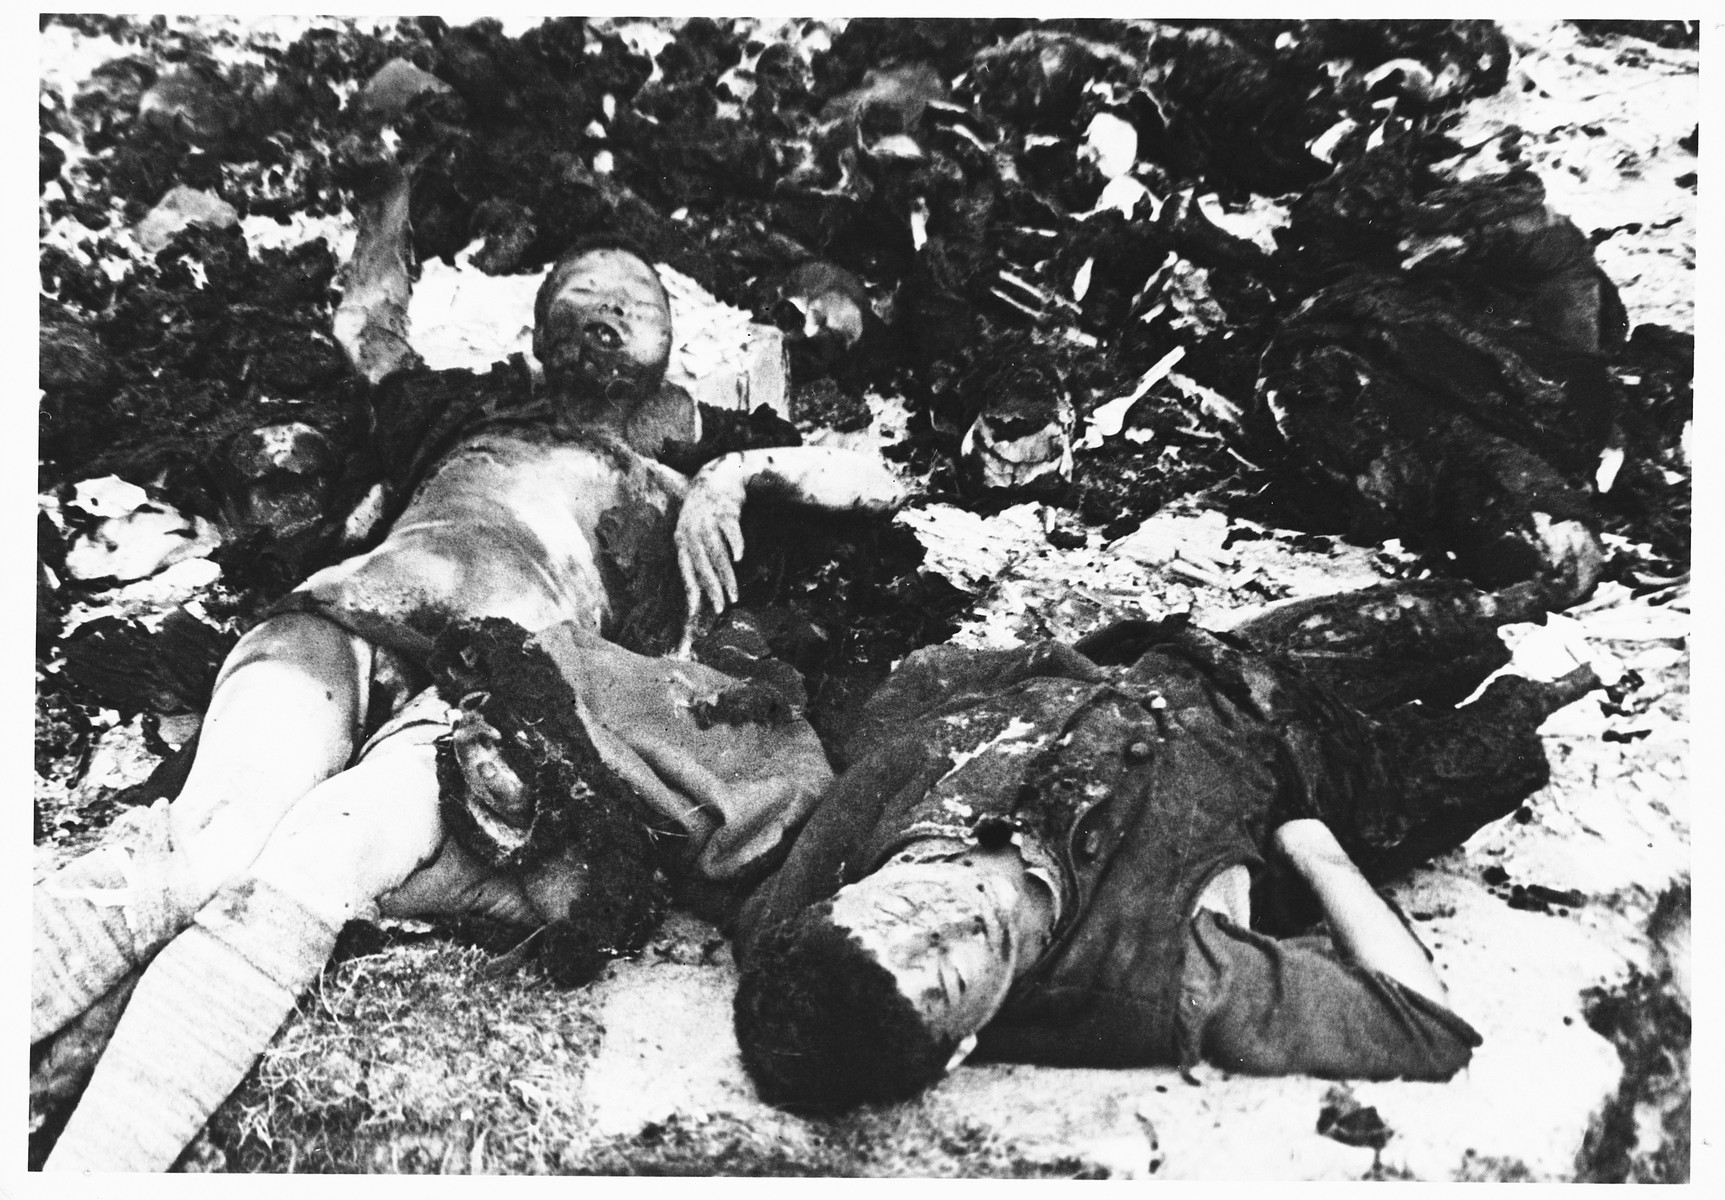 Postwar view of burned corpses in the Klooga concentration camp.